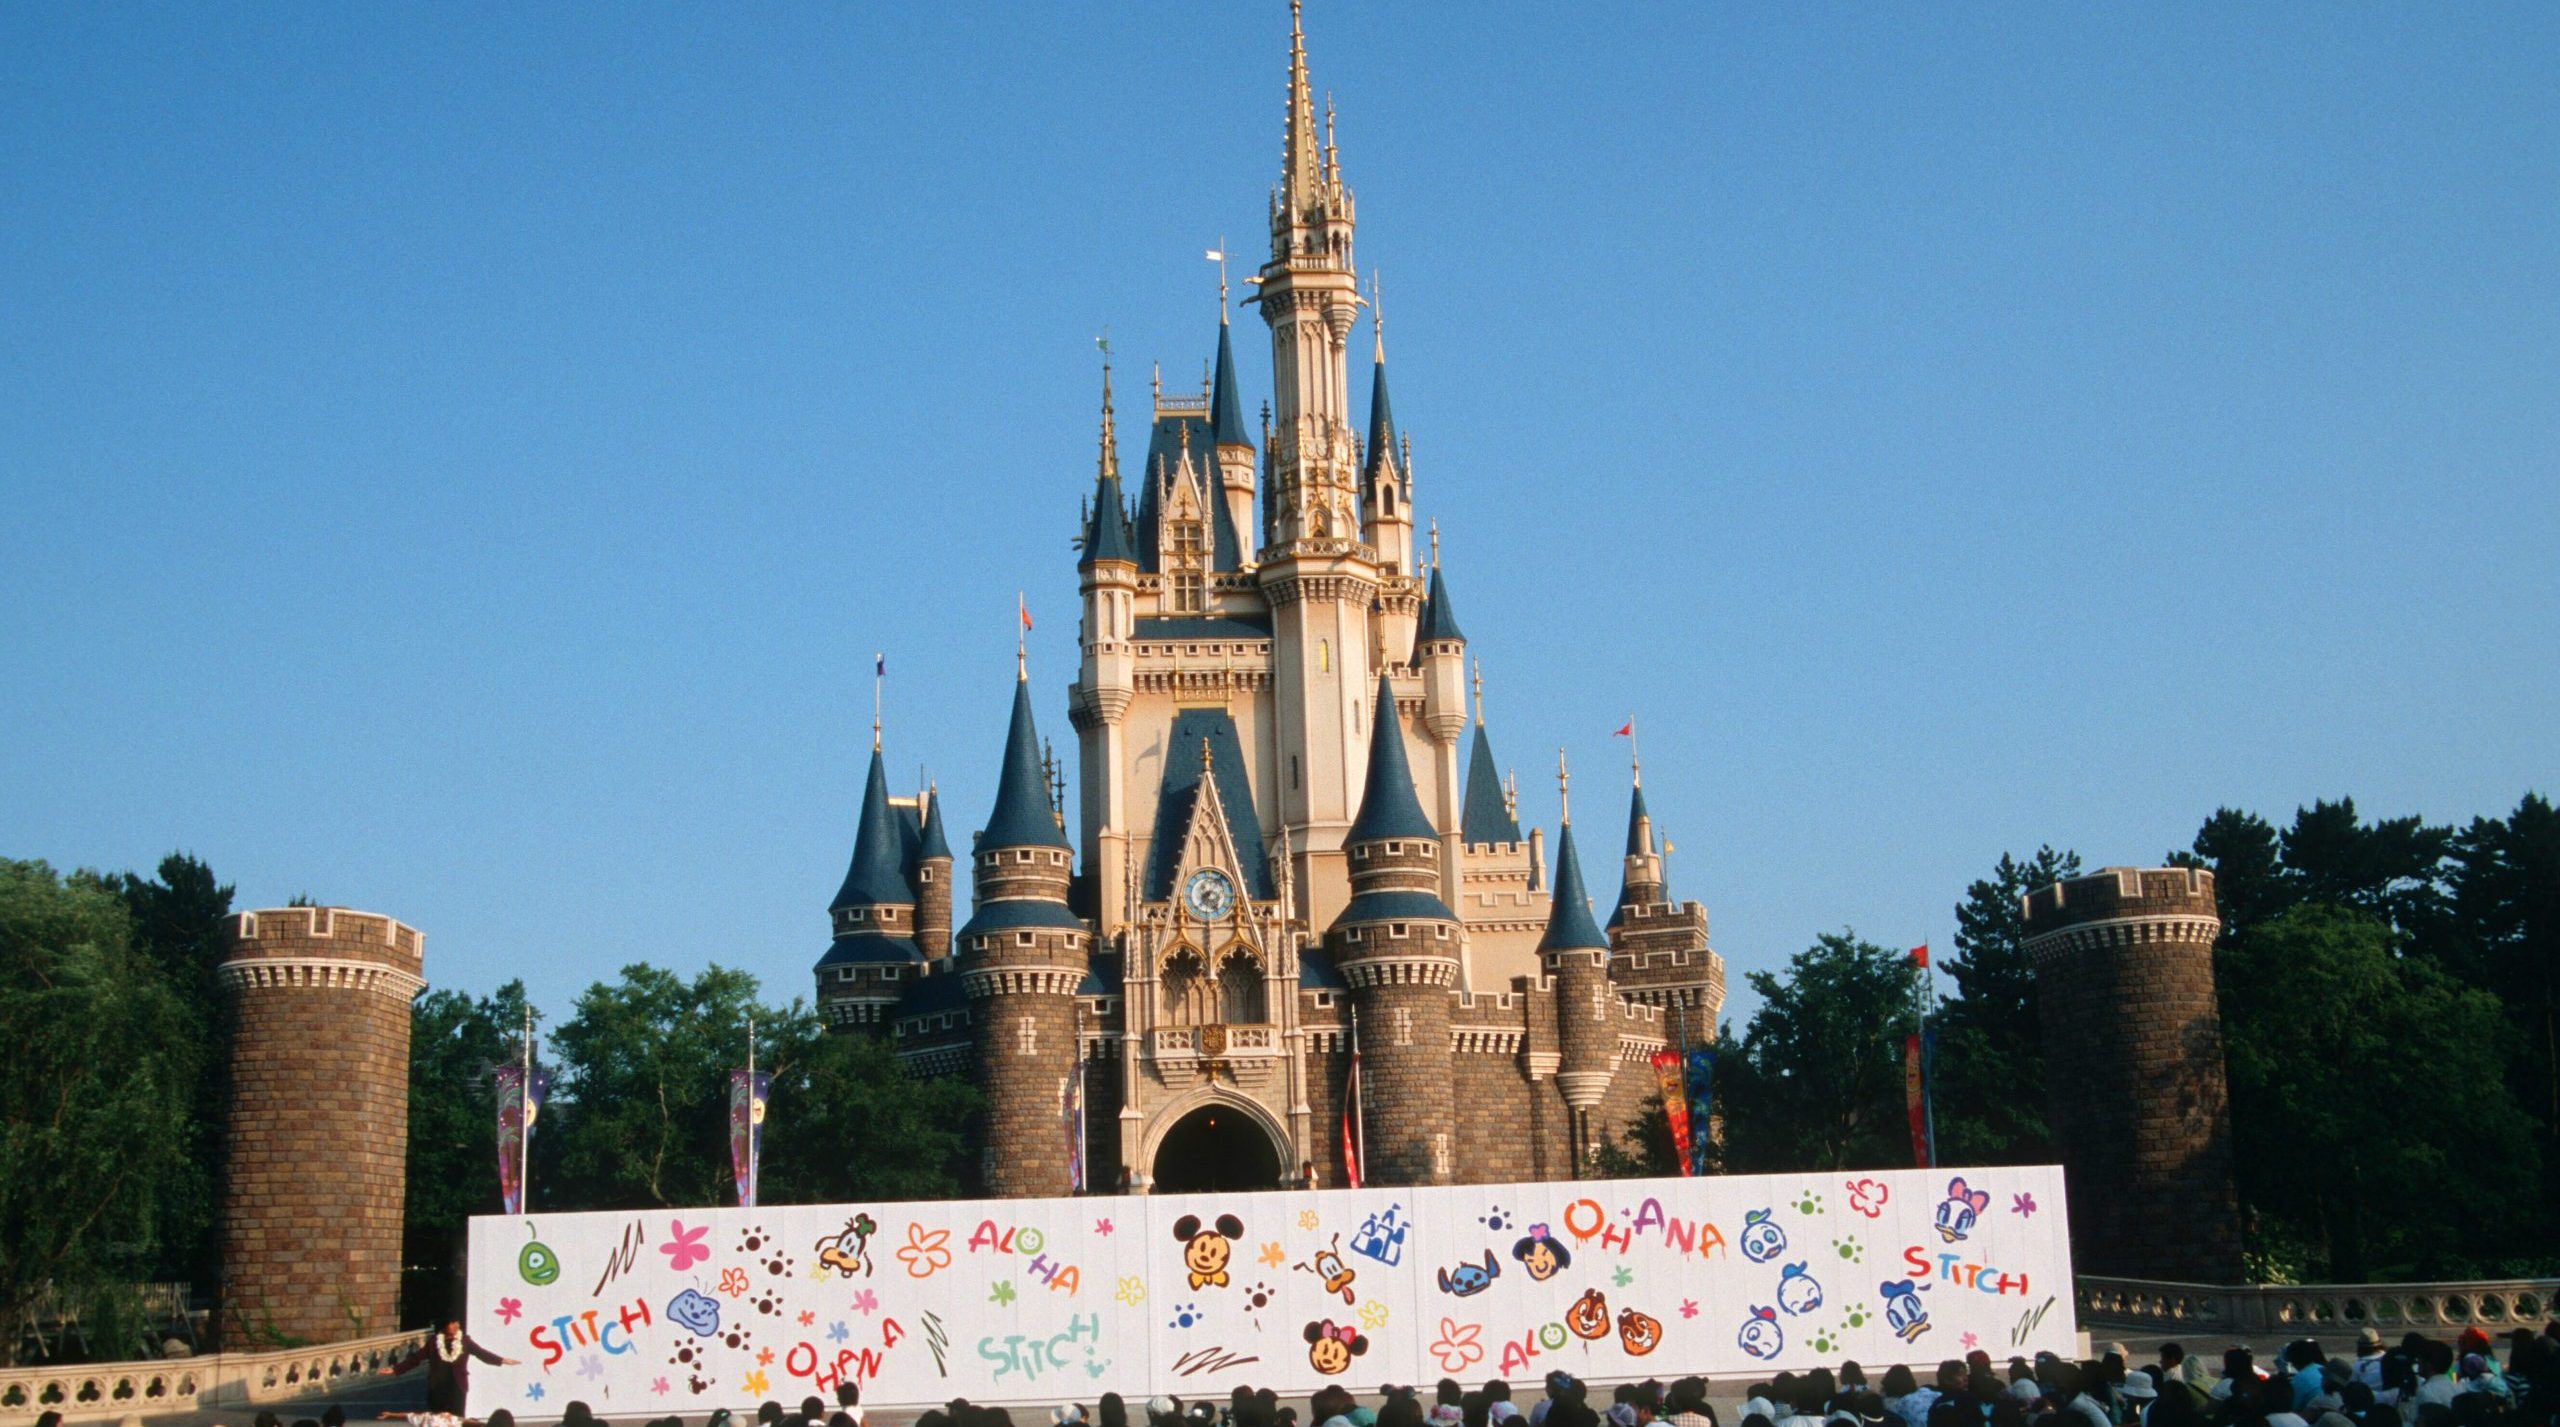 Coronavirus outbreak: Tokyo Disneyland closes as Japan rushes to contain deadly bug